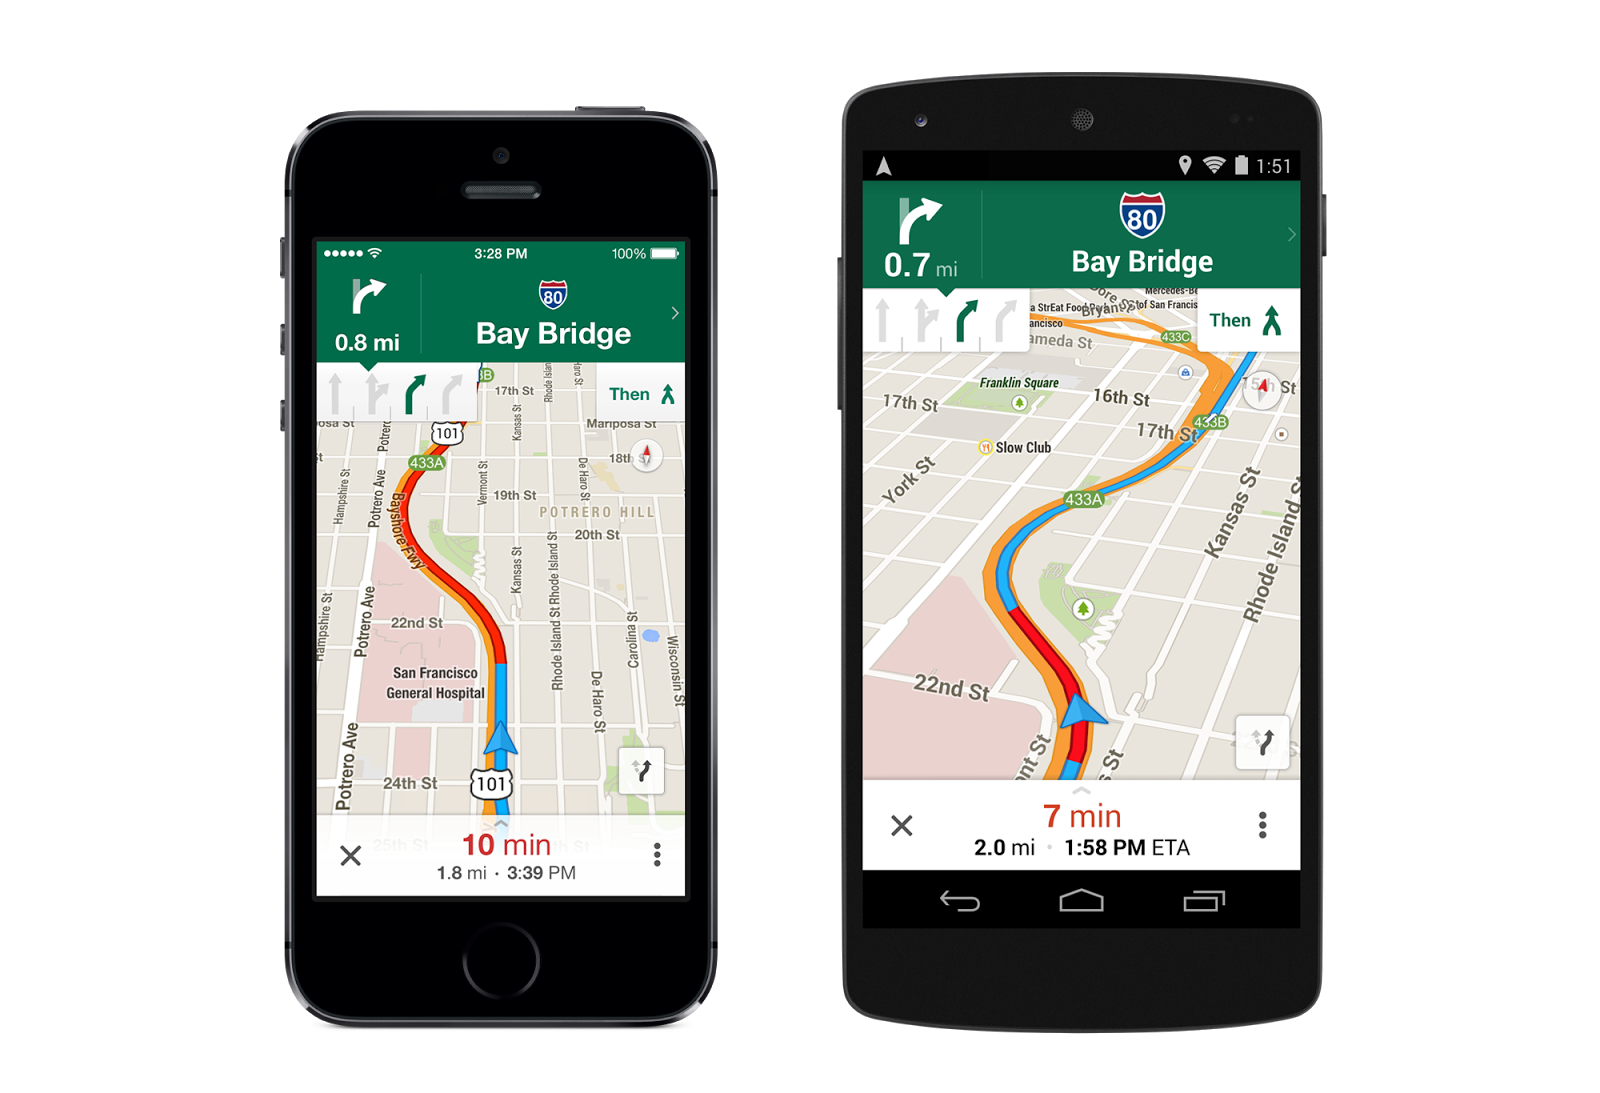 Download Google Offline Maps on